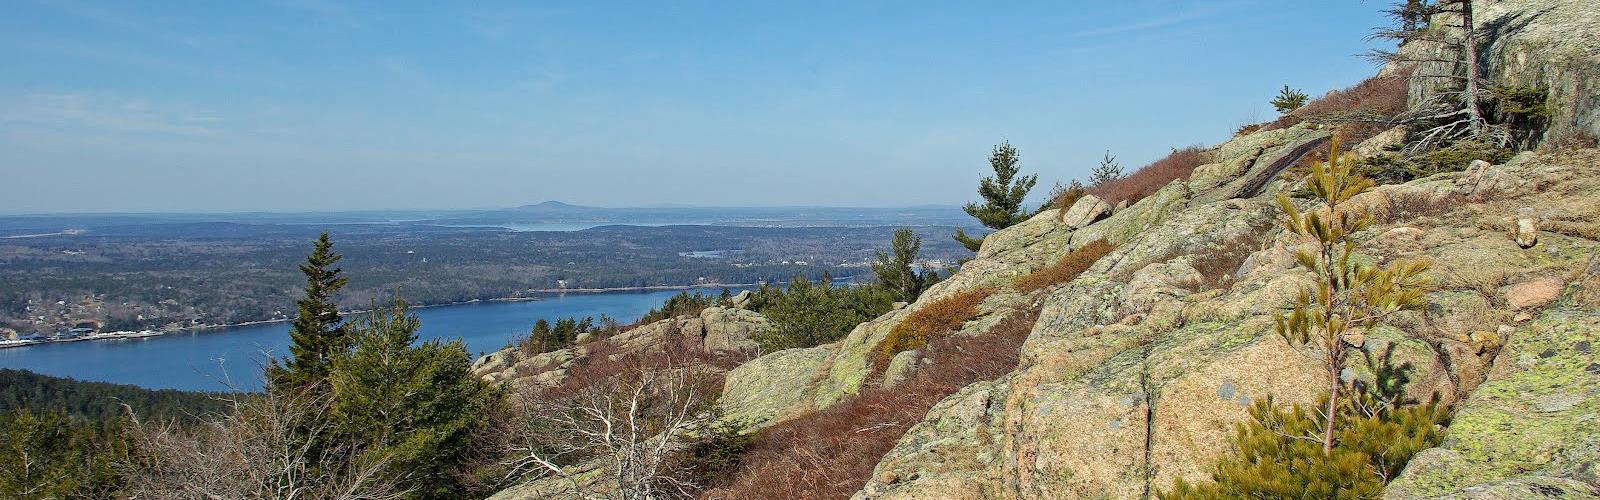 Parkman Mountain, Maine - Hiking  outdoor mountain sky rock water lake nature landscape tree hill beach rocky hillside plant overlooking lush